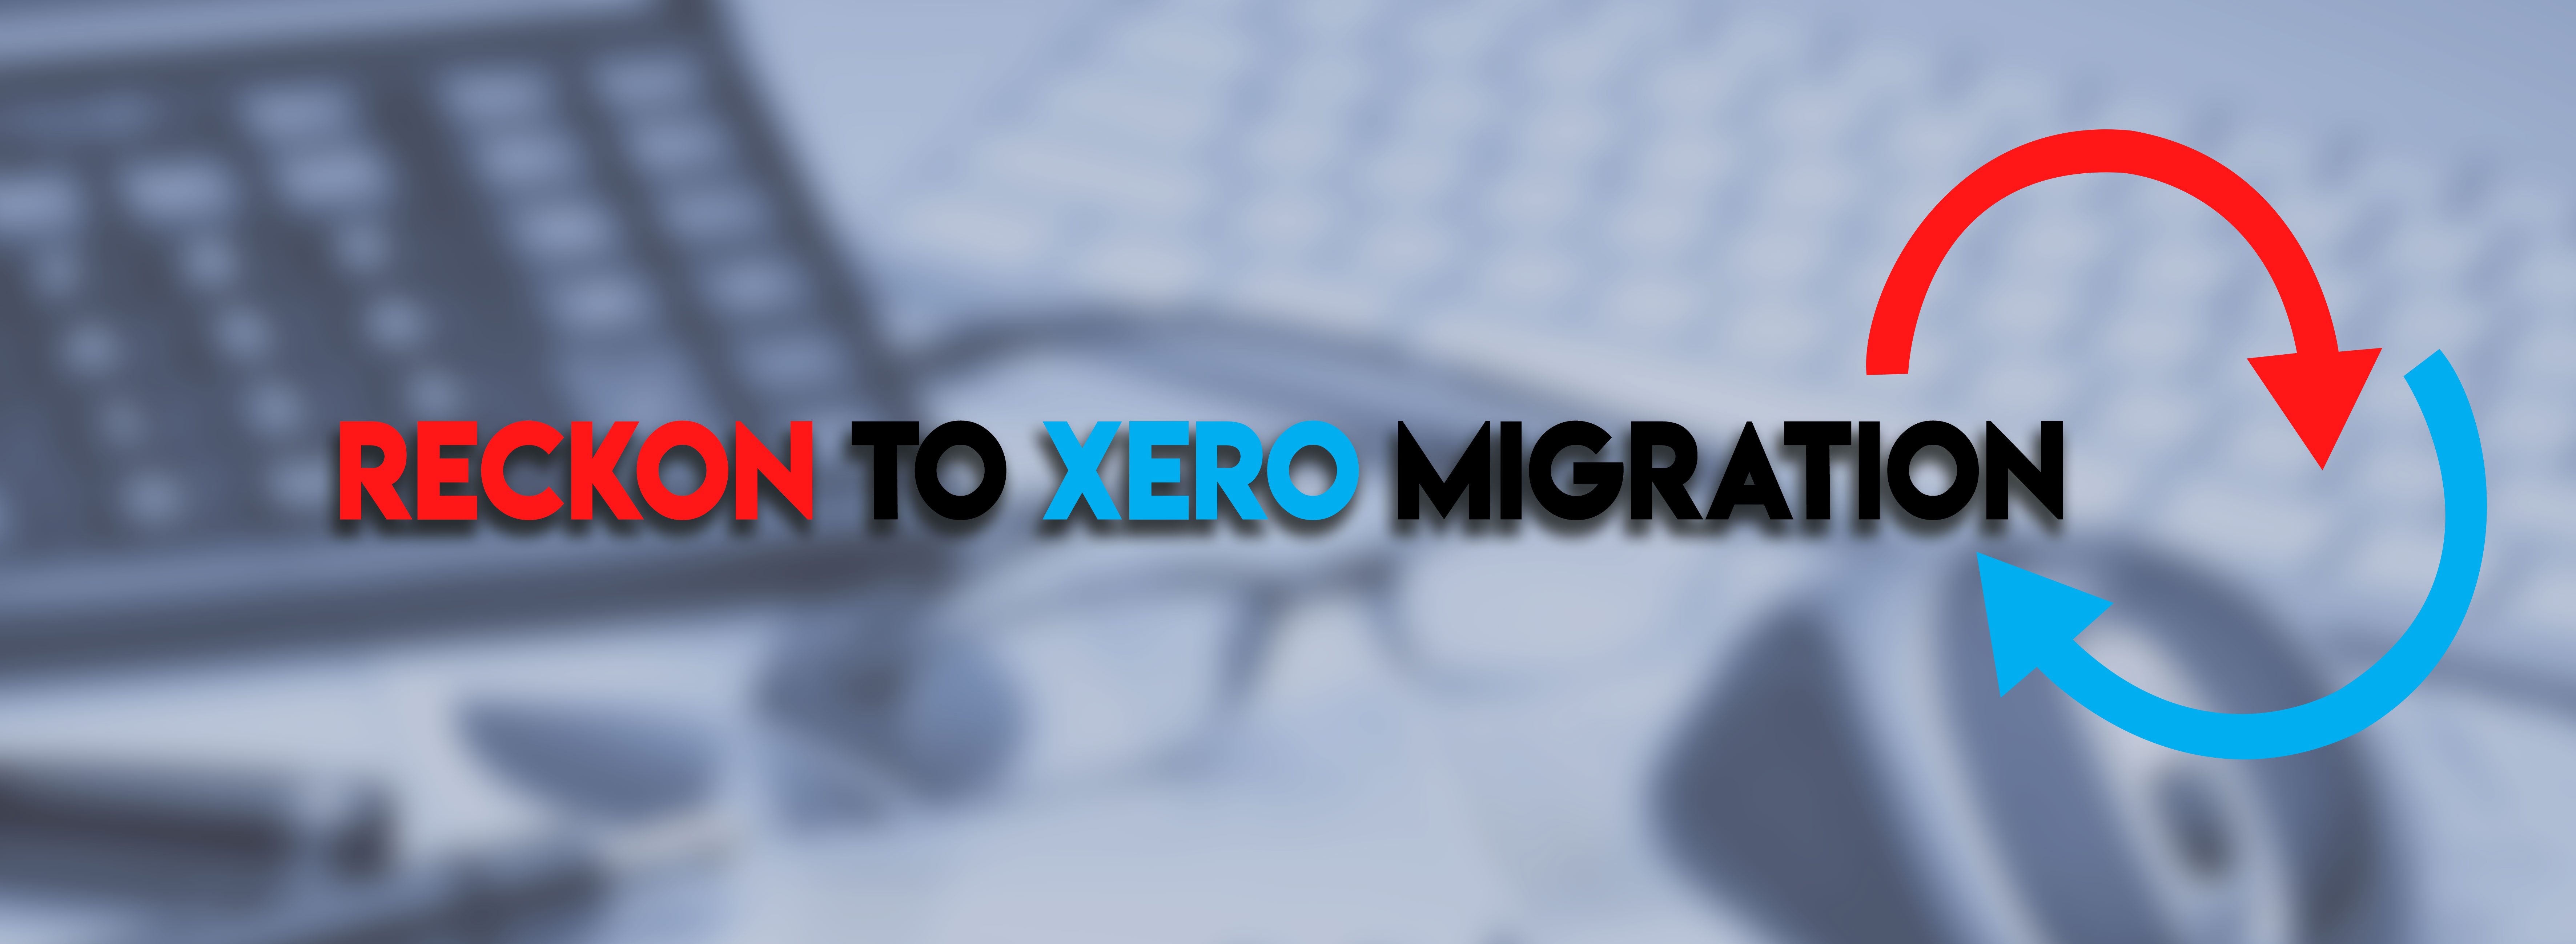 Reckon to XERO Migration